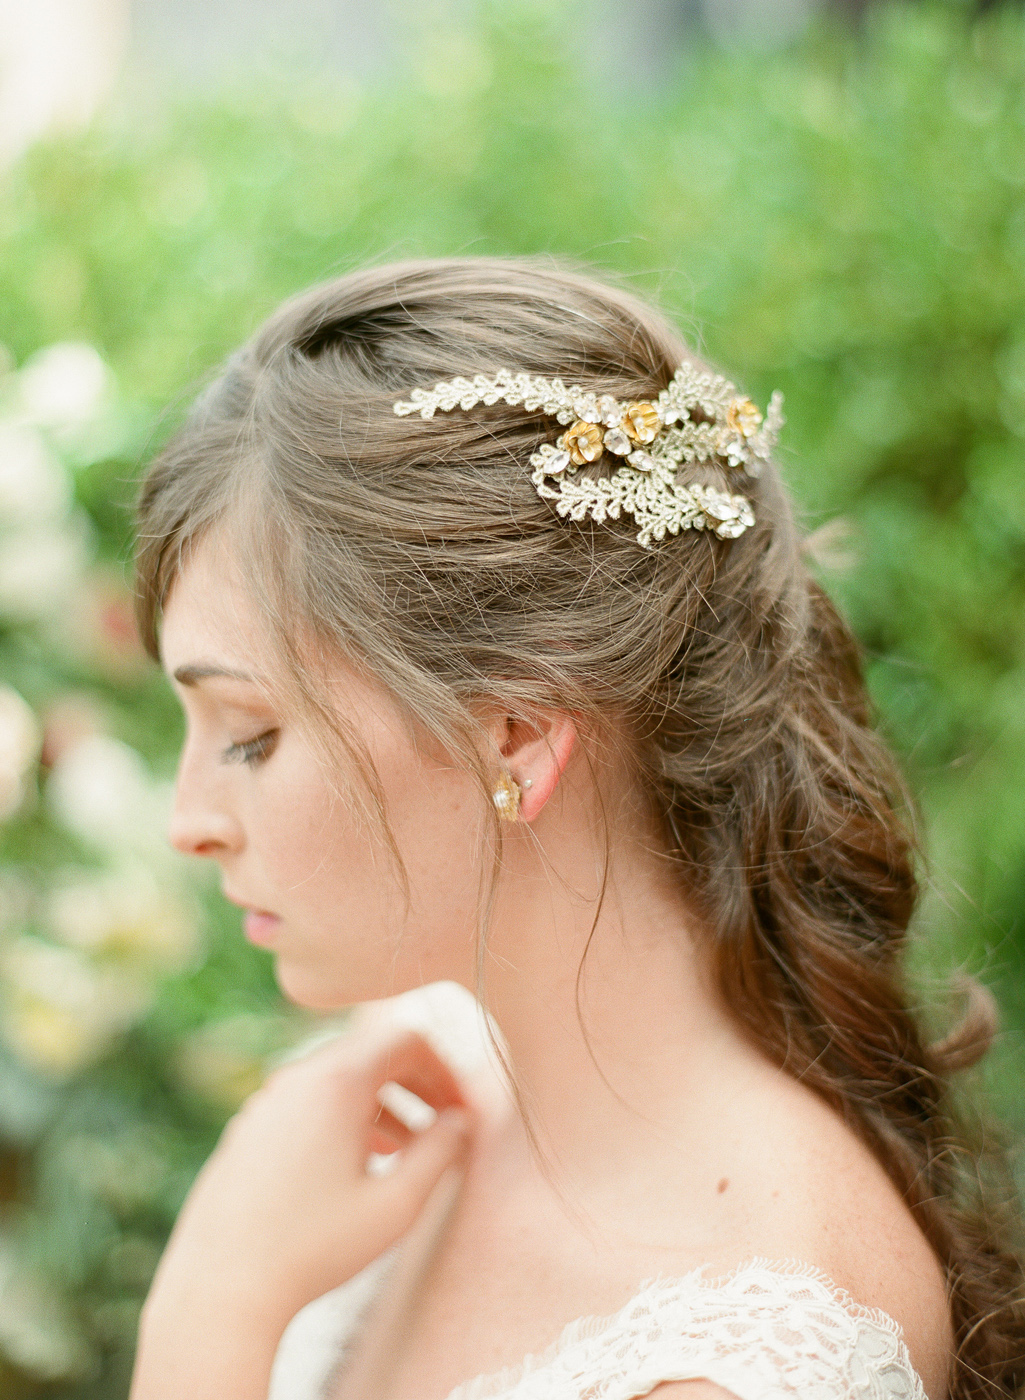 gold vine hair comb with flowers hushed commmotion